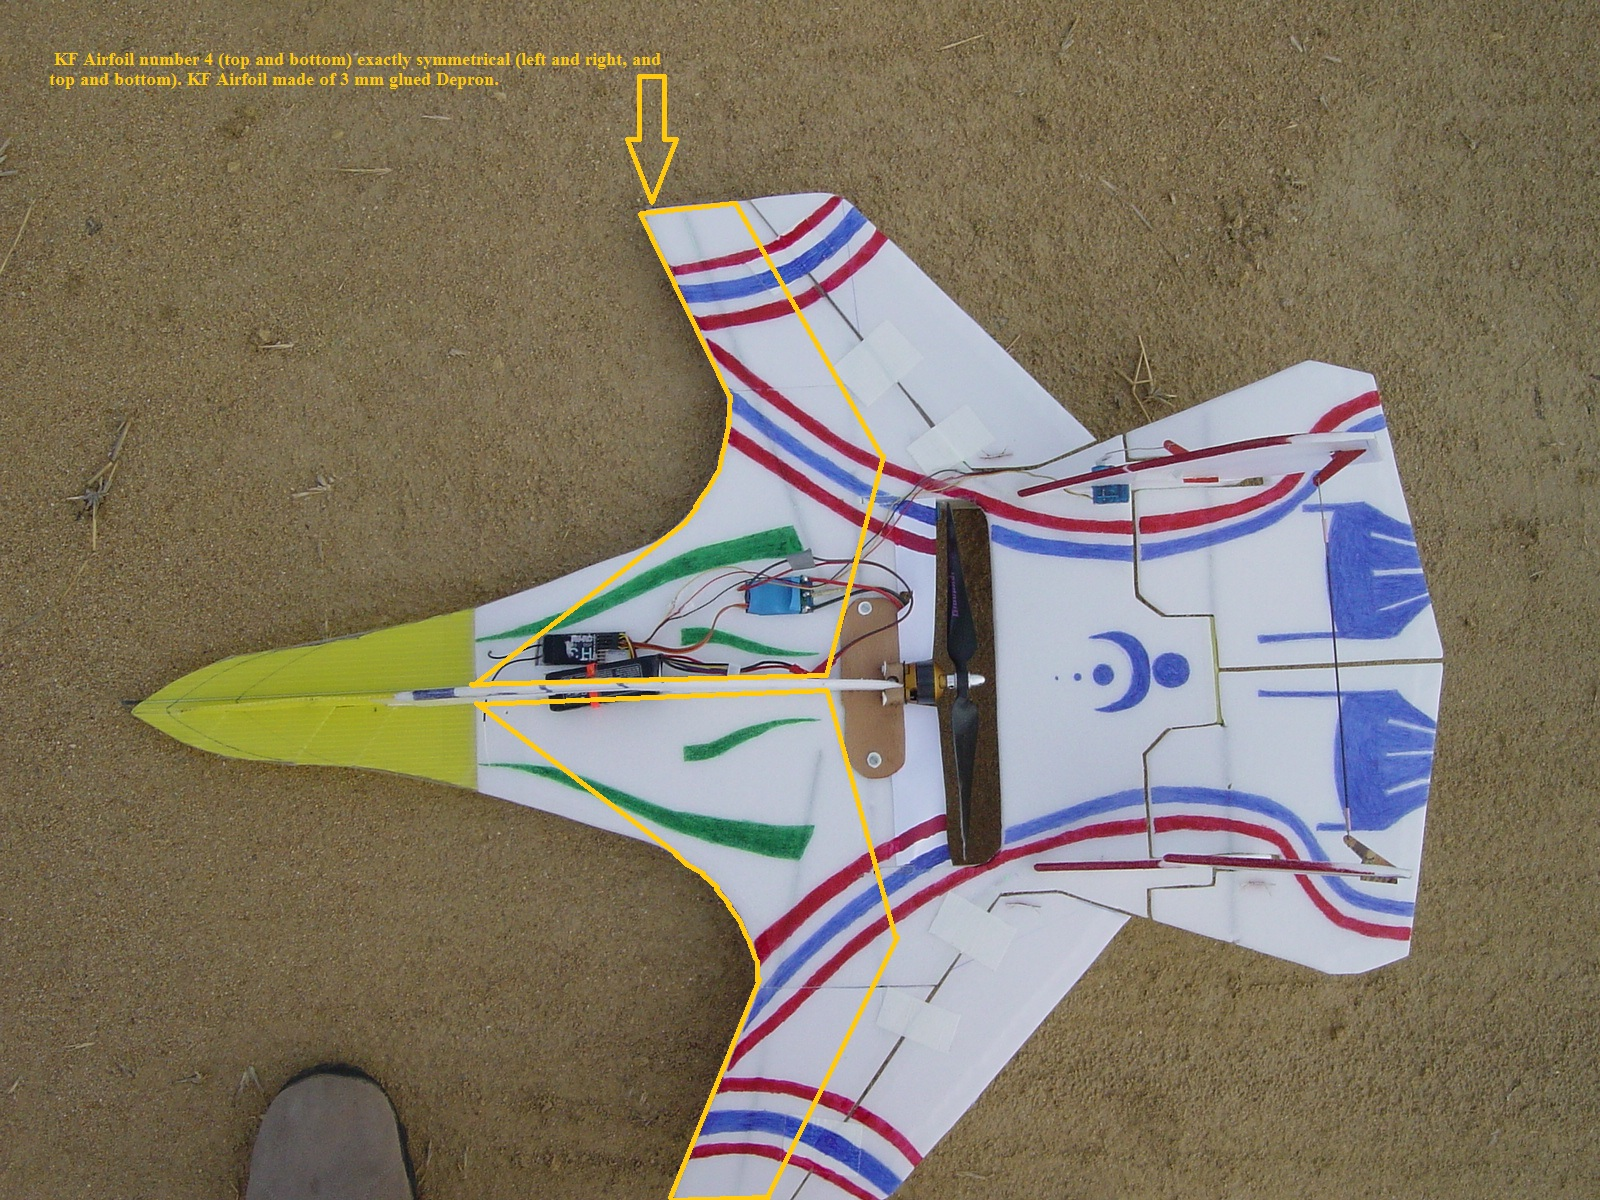 Click image for larger version  Name:SU 47 V2 JB KF airfoil.jpg Views:37 Size:801.3 KB ID:1959027